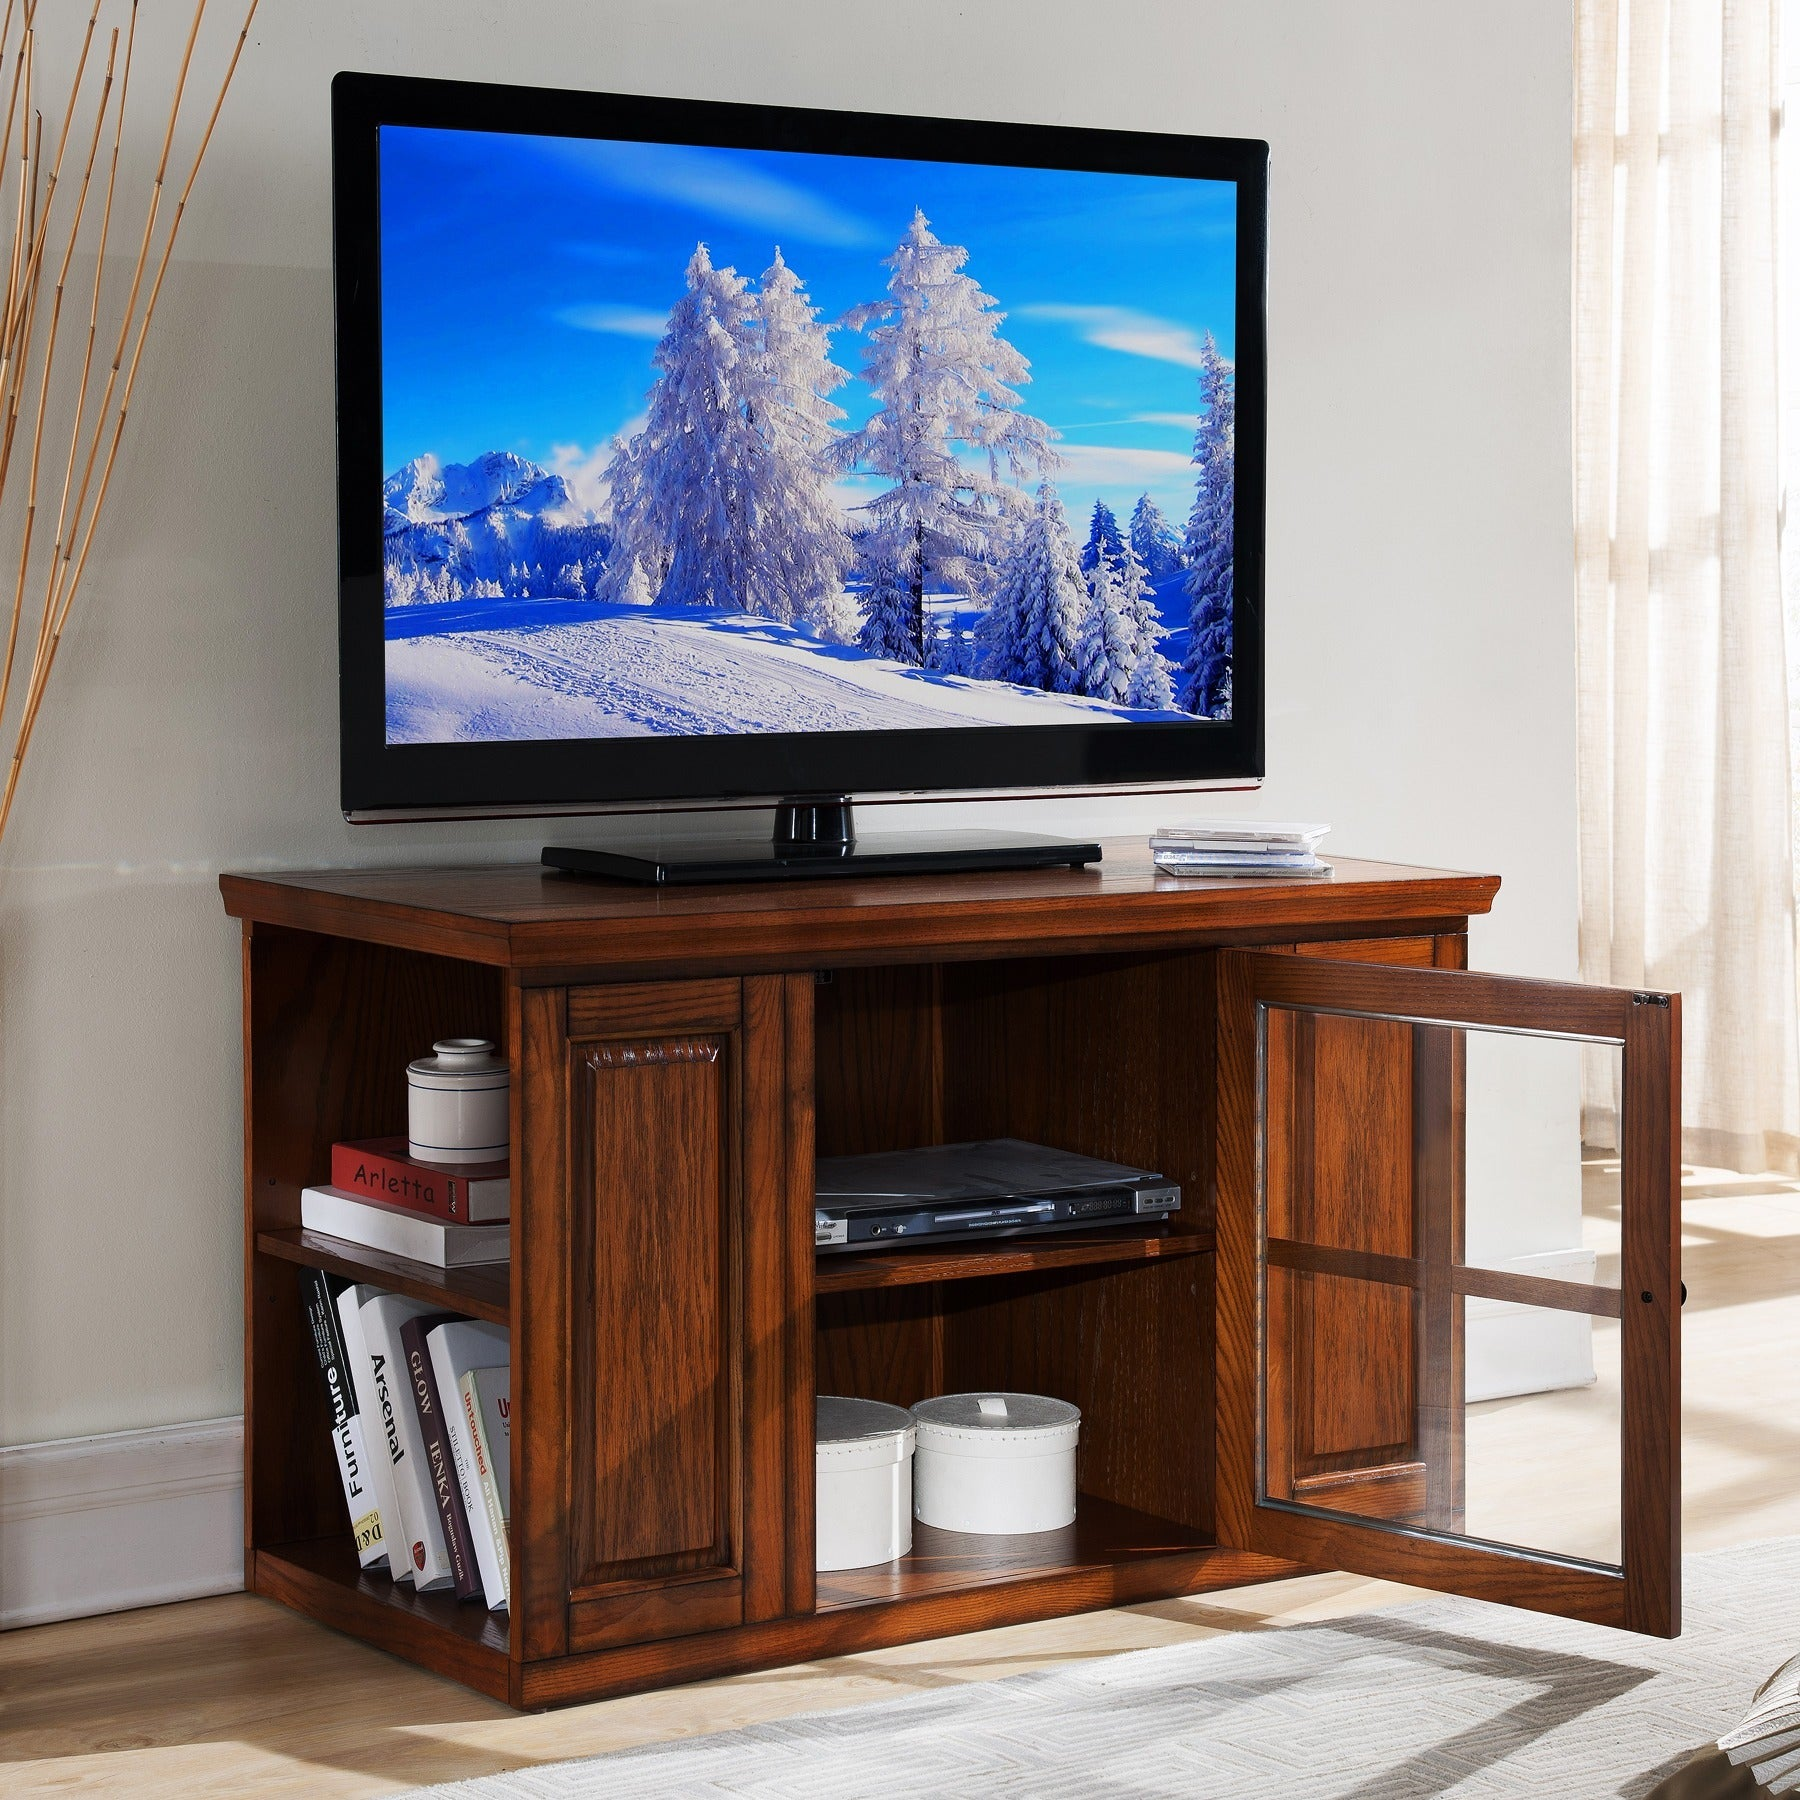 Shop Oak 42 Inch Bookcase Tv Stand Media Console Free Shipping